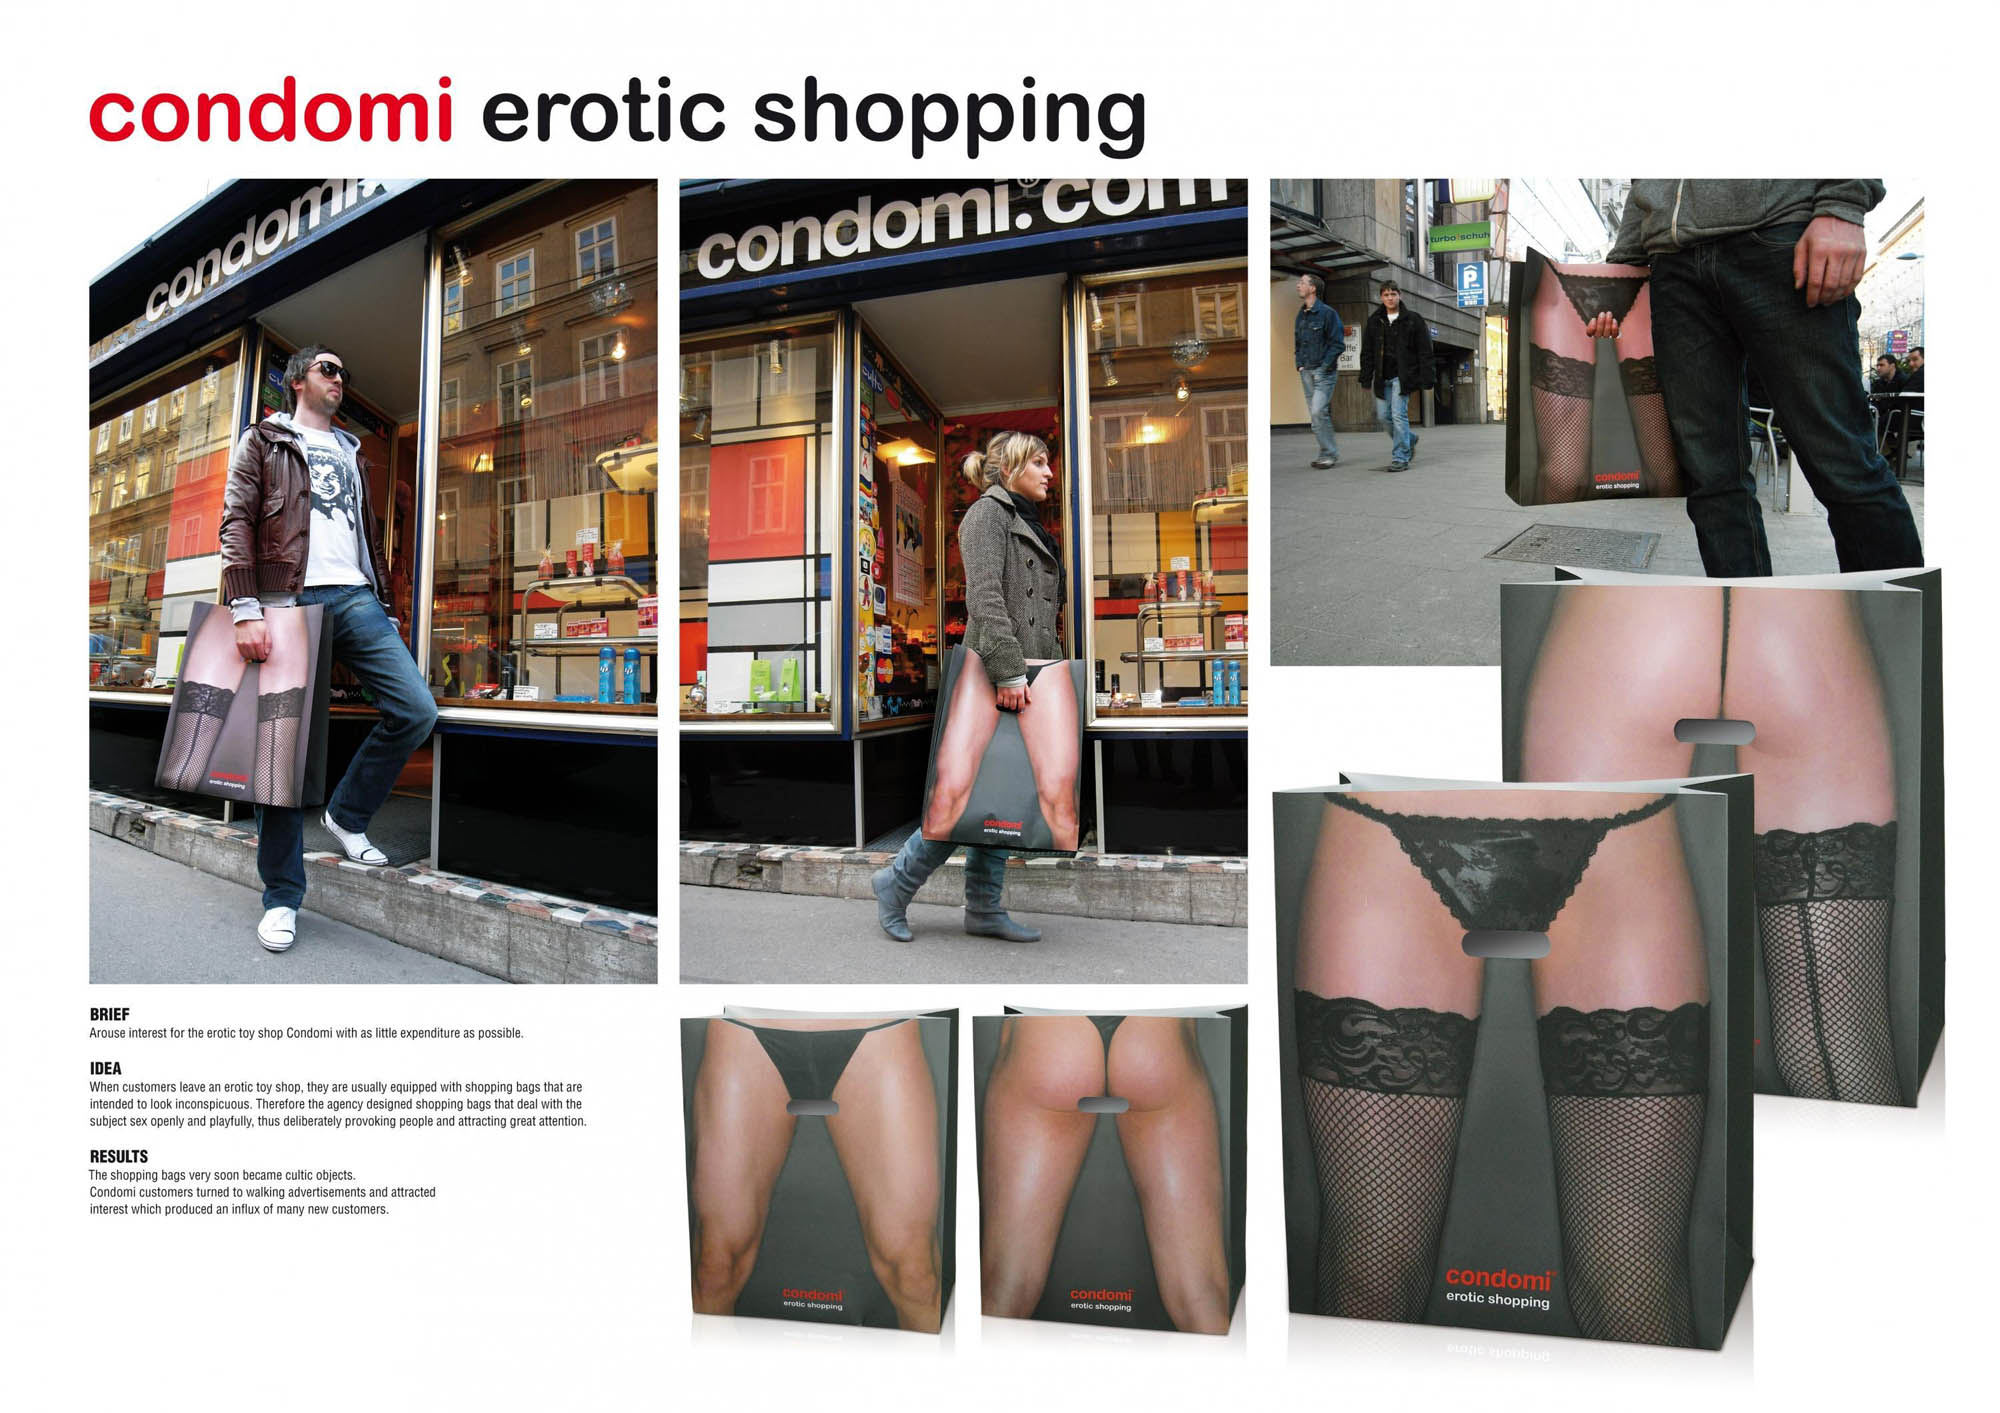 http://www.ibelieveinadv.com/commons/shopping_condomi.jpg